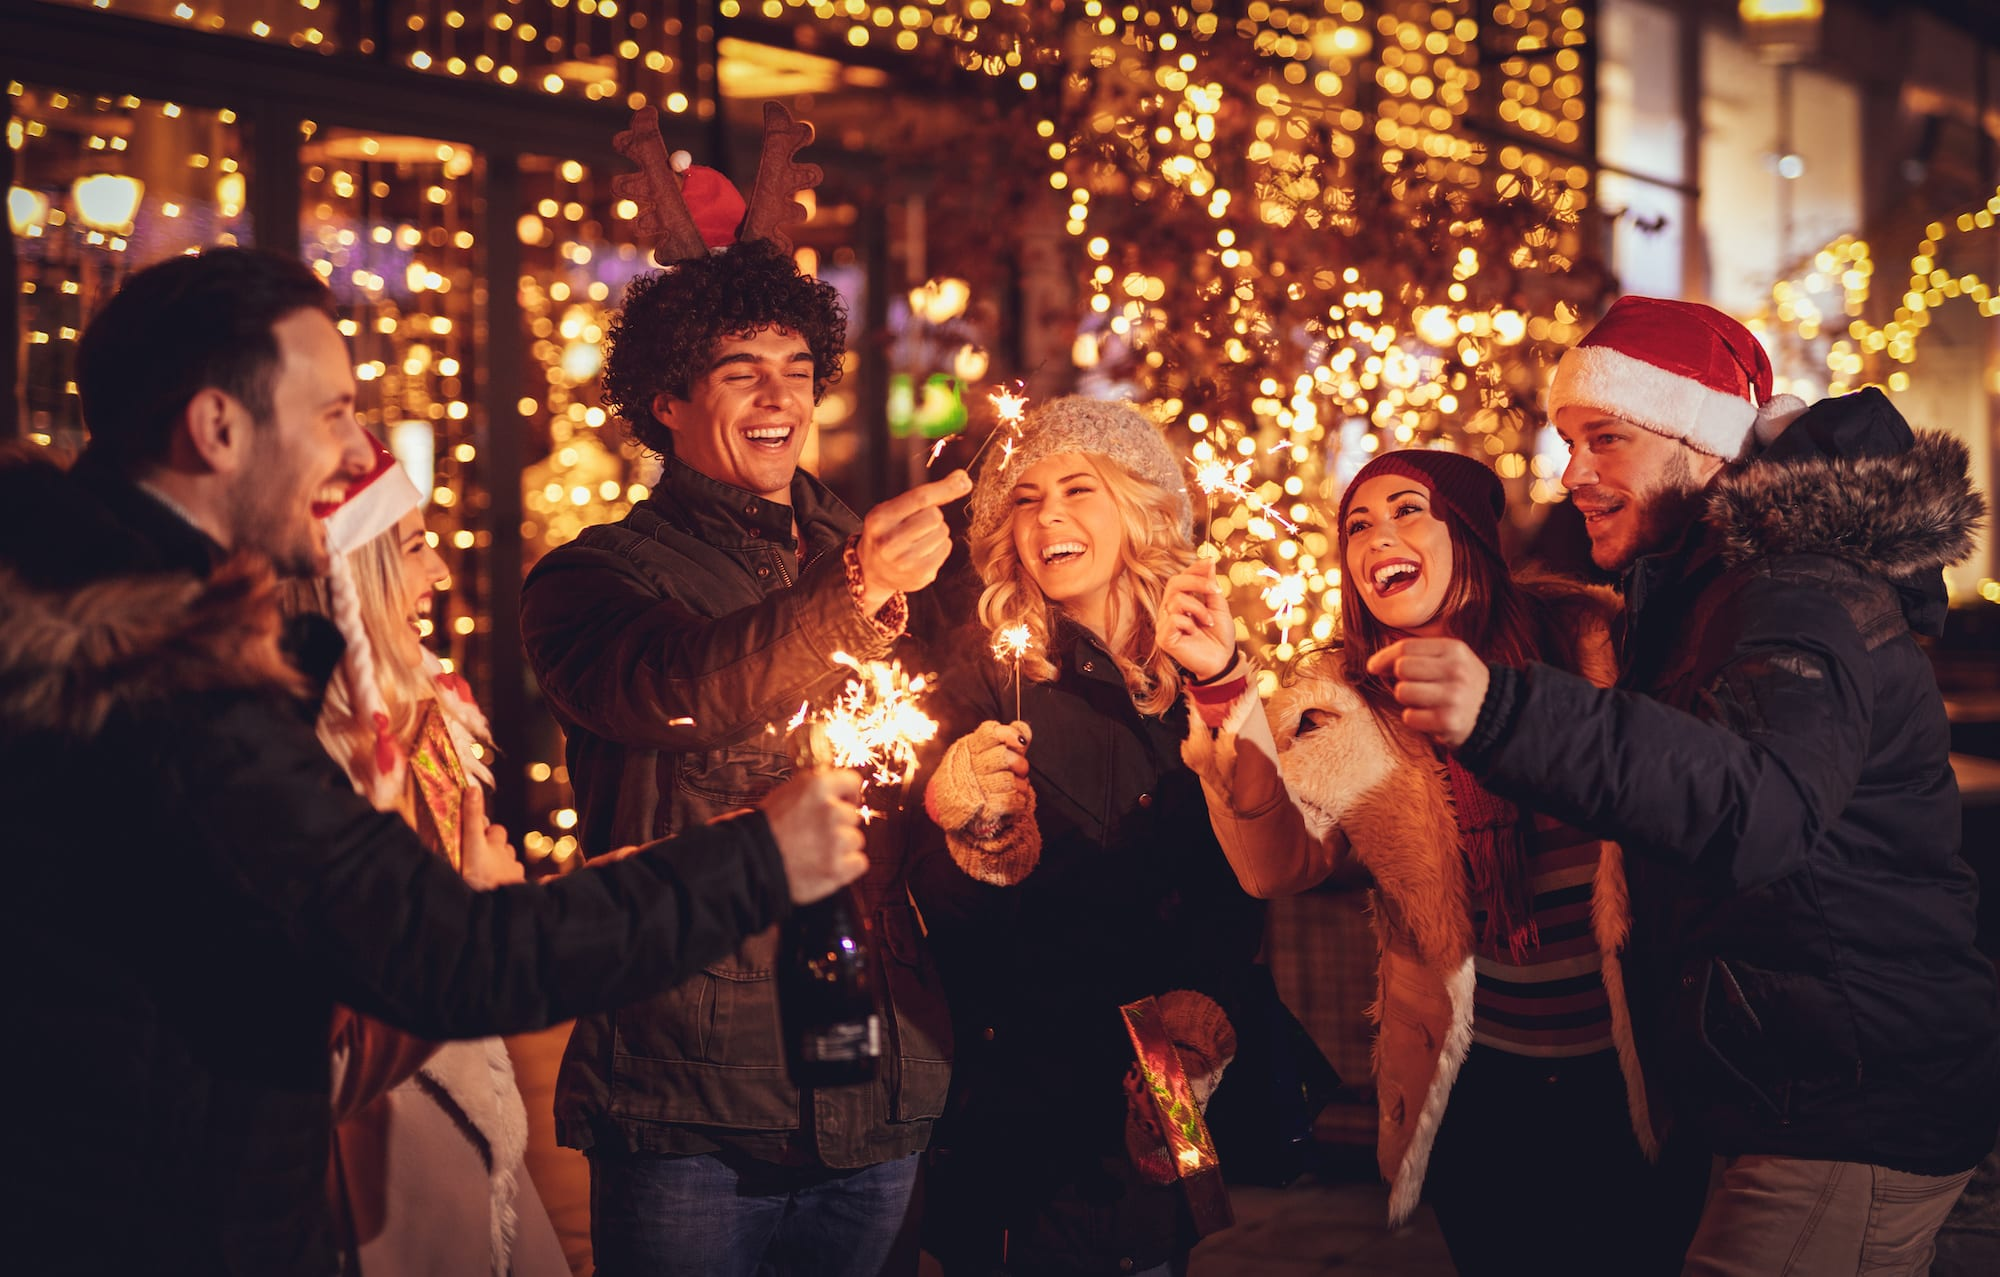 Friends With Sparklers At The New Year Party | Beltone Hearing aid